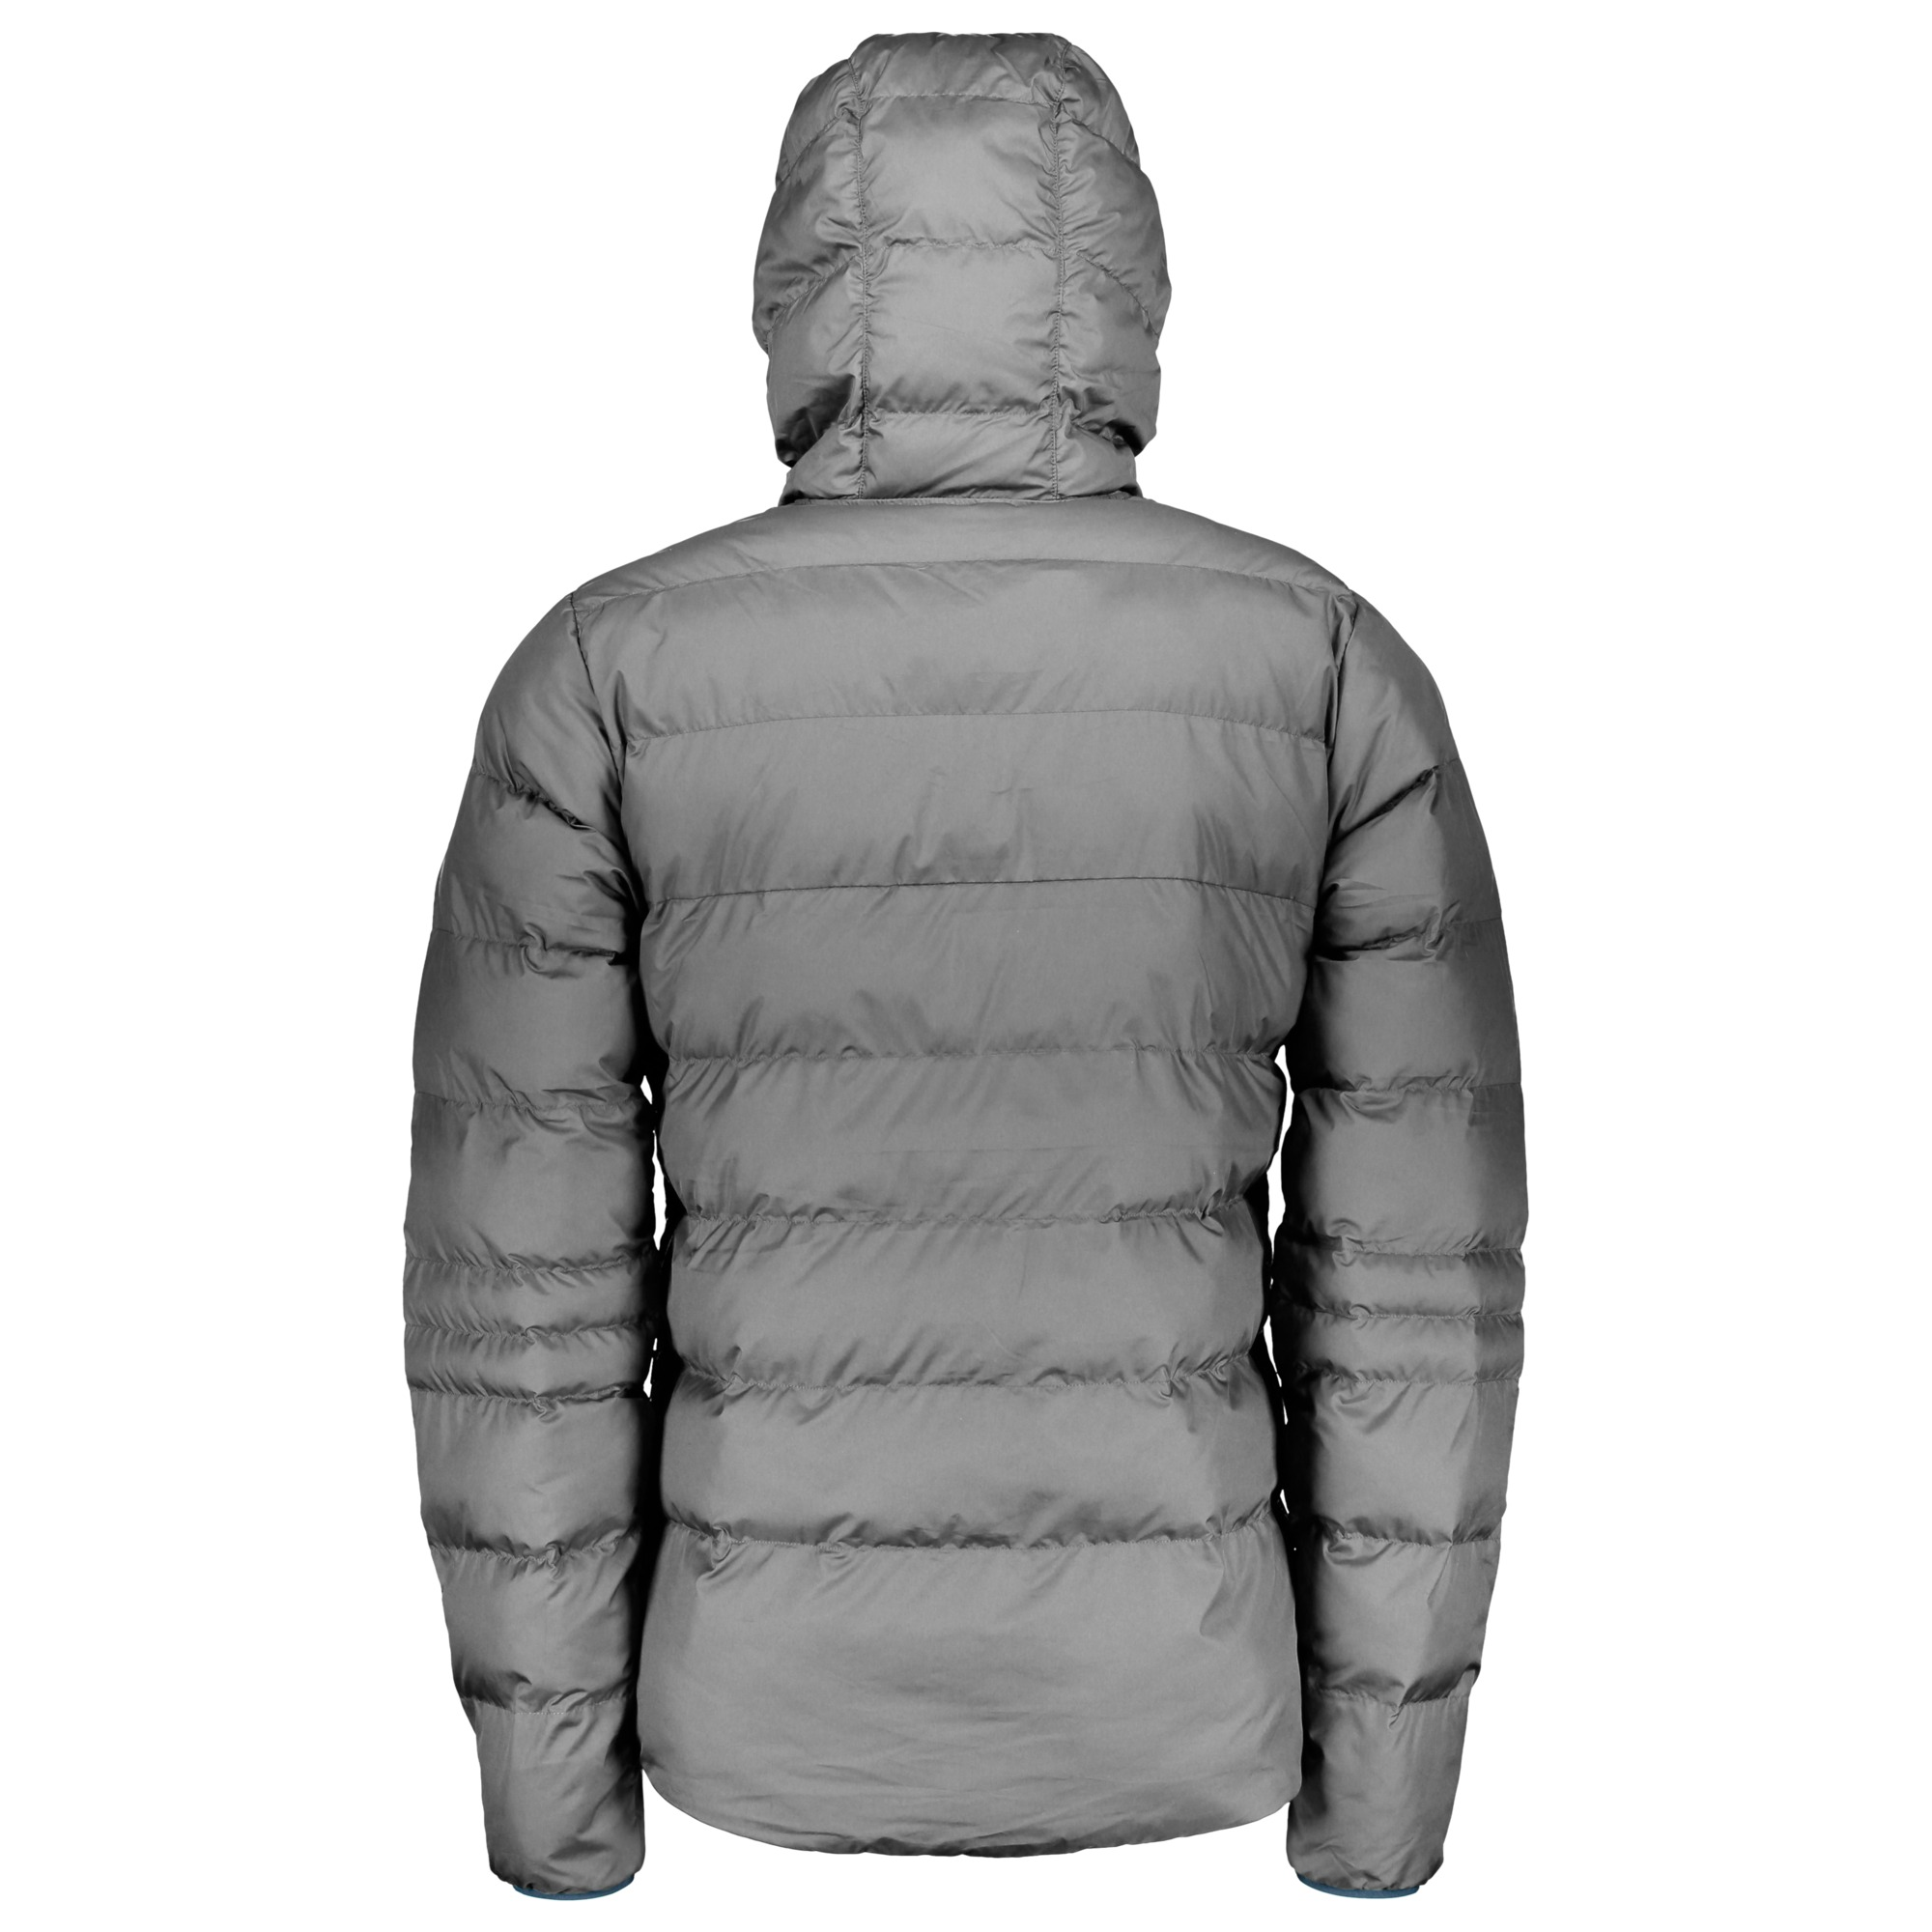 SCOTT Insuloft Down 3M Jacket